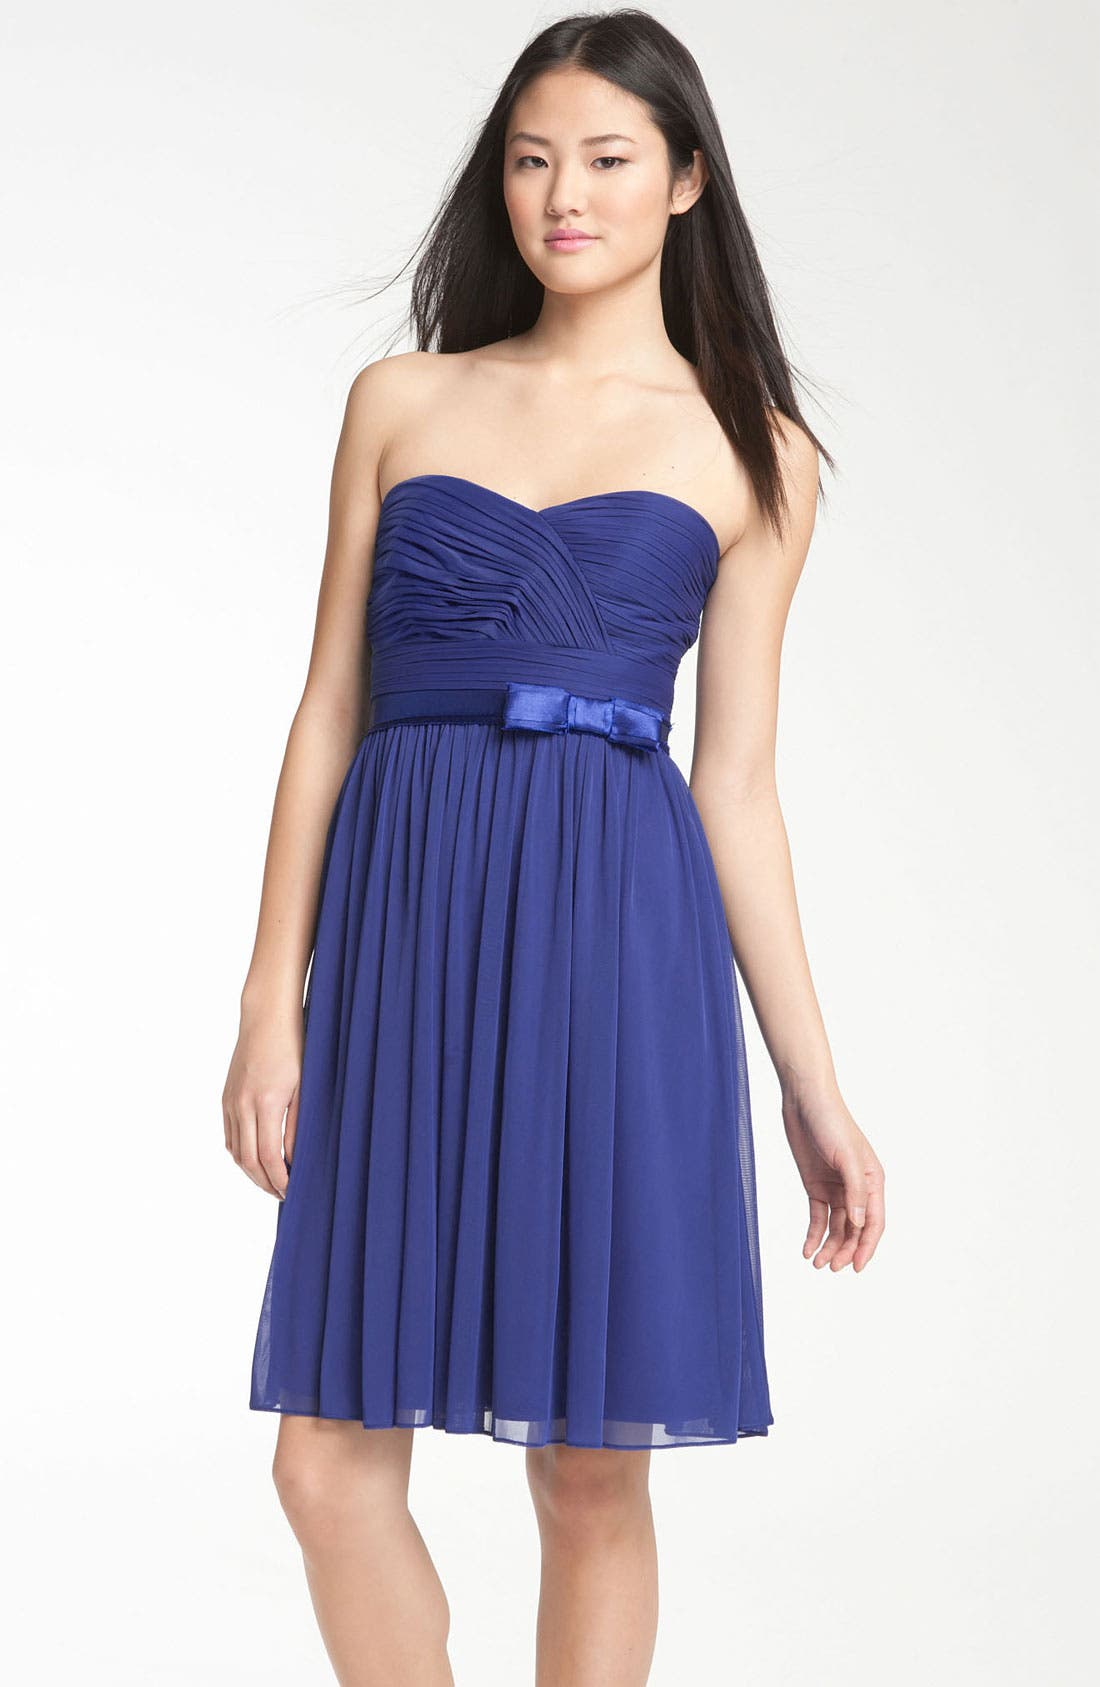 Alternate Image 1 Selected - ML Monique Lhuillier Bridesmaids Sweetheart Chiffon Dress (Nordstrom Exclusive)